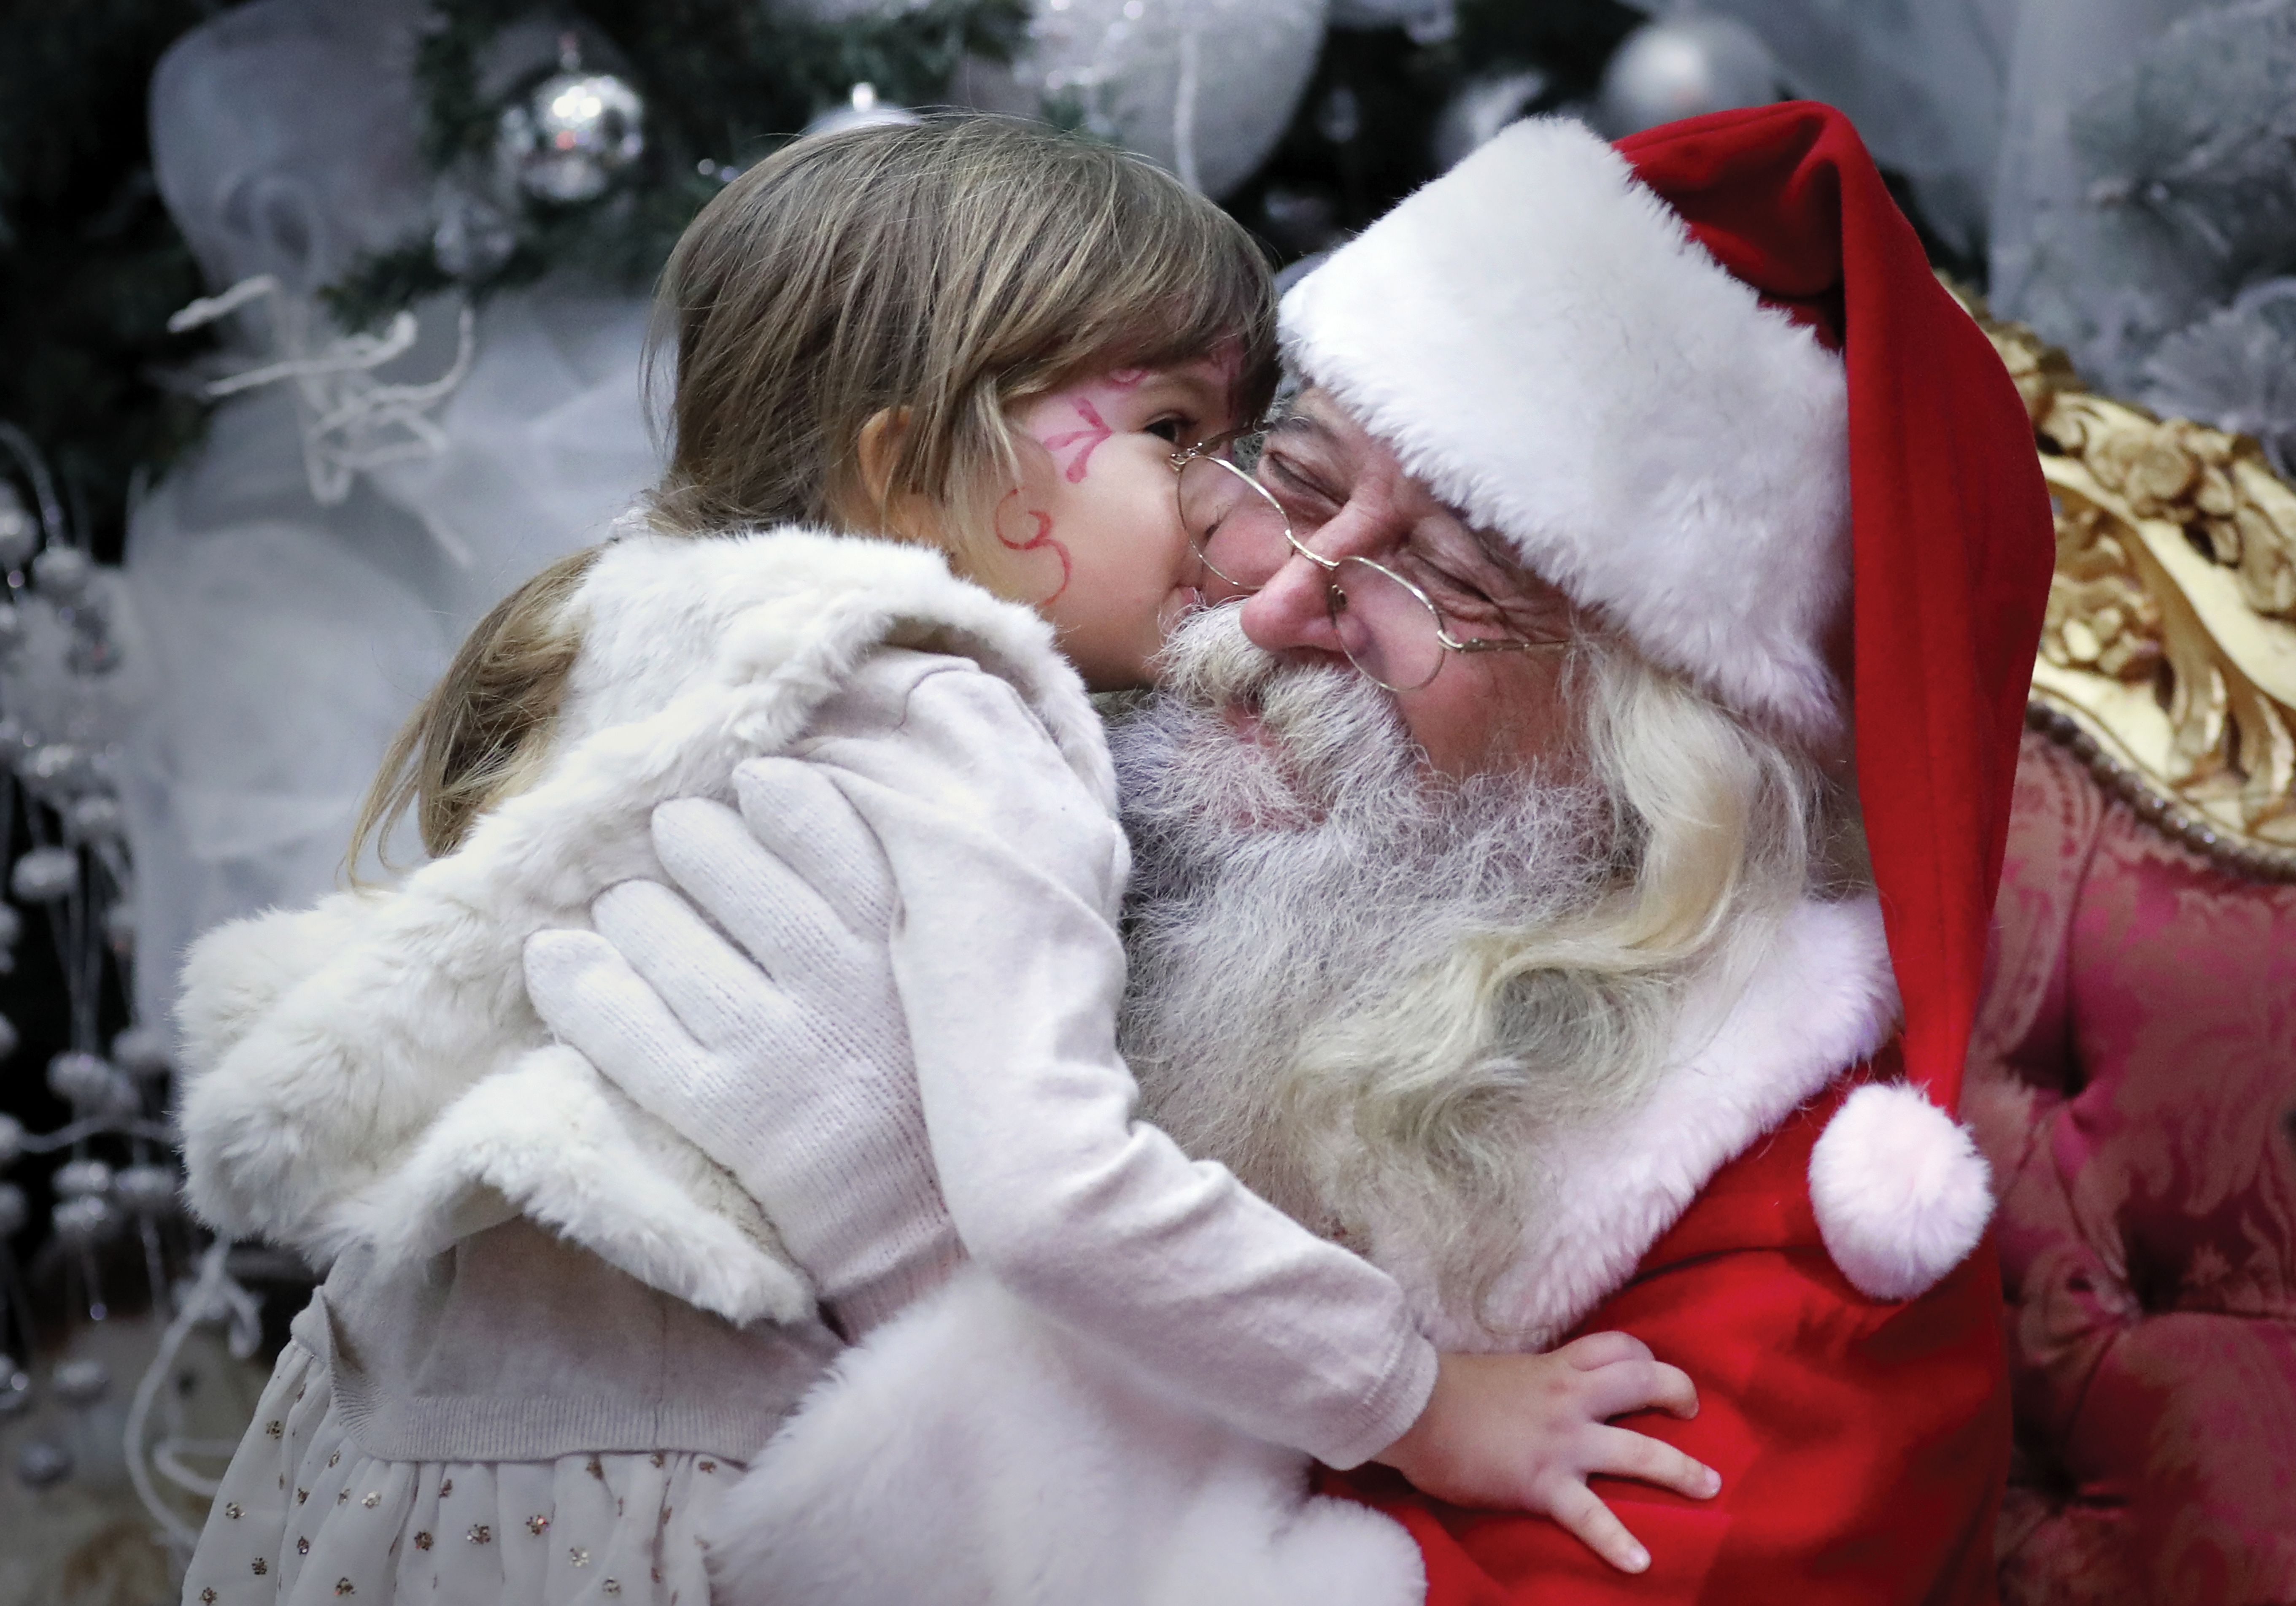 How to pull off a no-gifts Christmas - The Washington Post